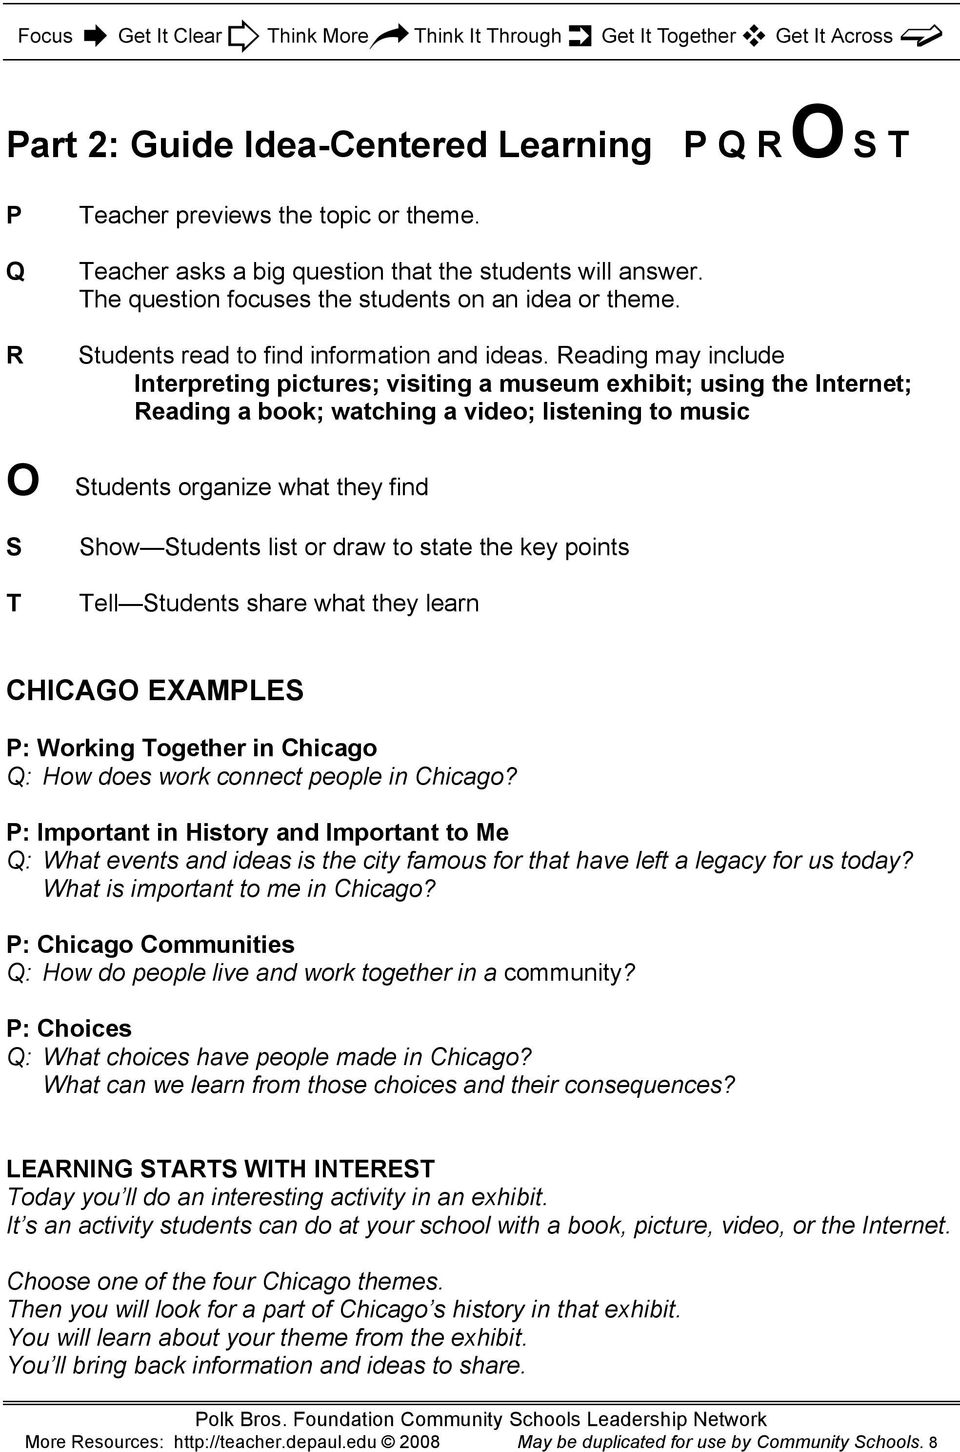 Chicago Connections. City Community Reading Writing Social Studies ...